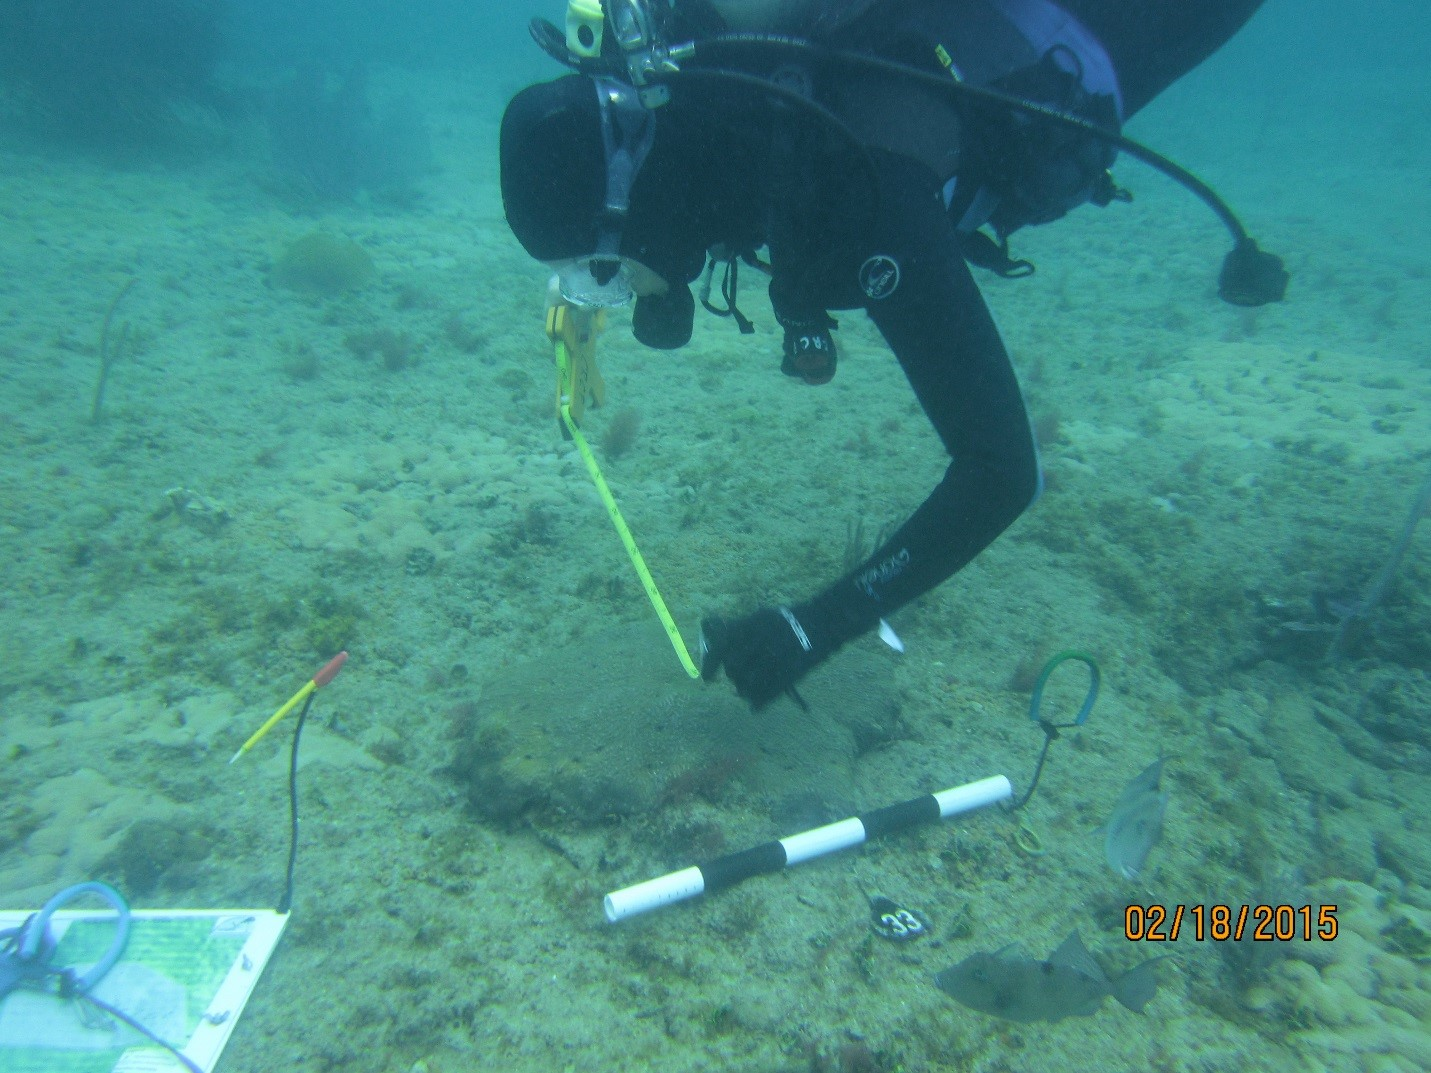 Coral Reef Conservation Program staff member Meghan Balling measures a coral at the monitoring site.